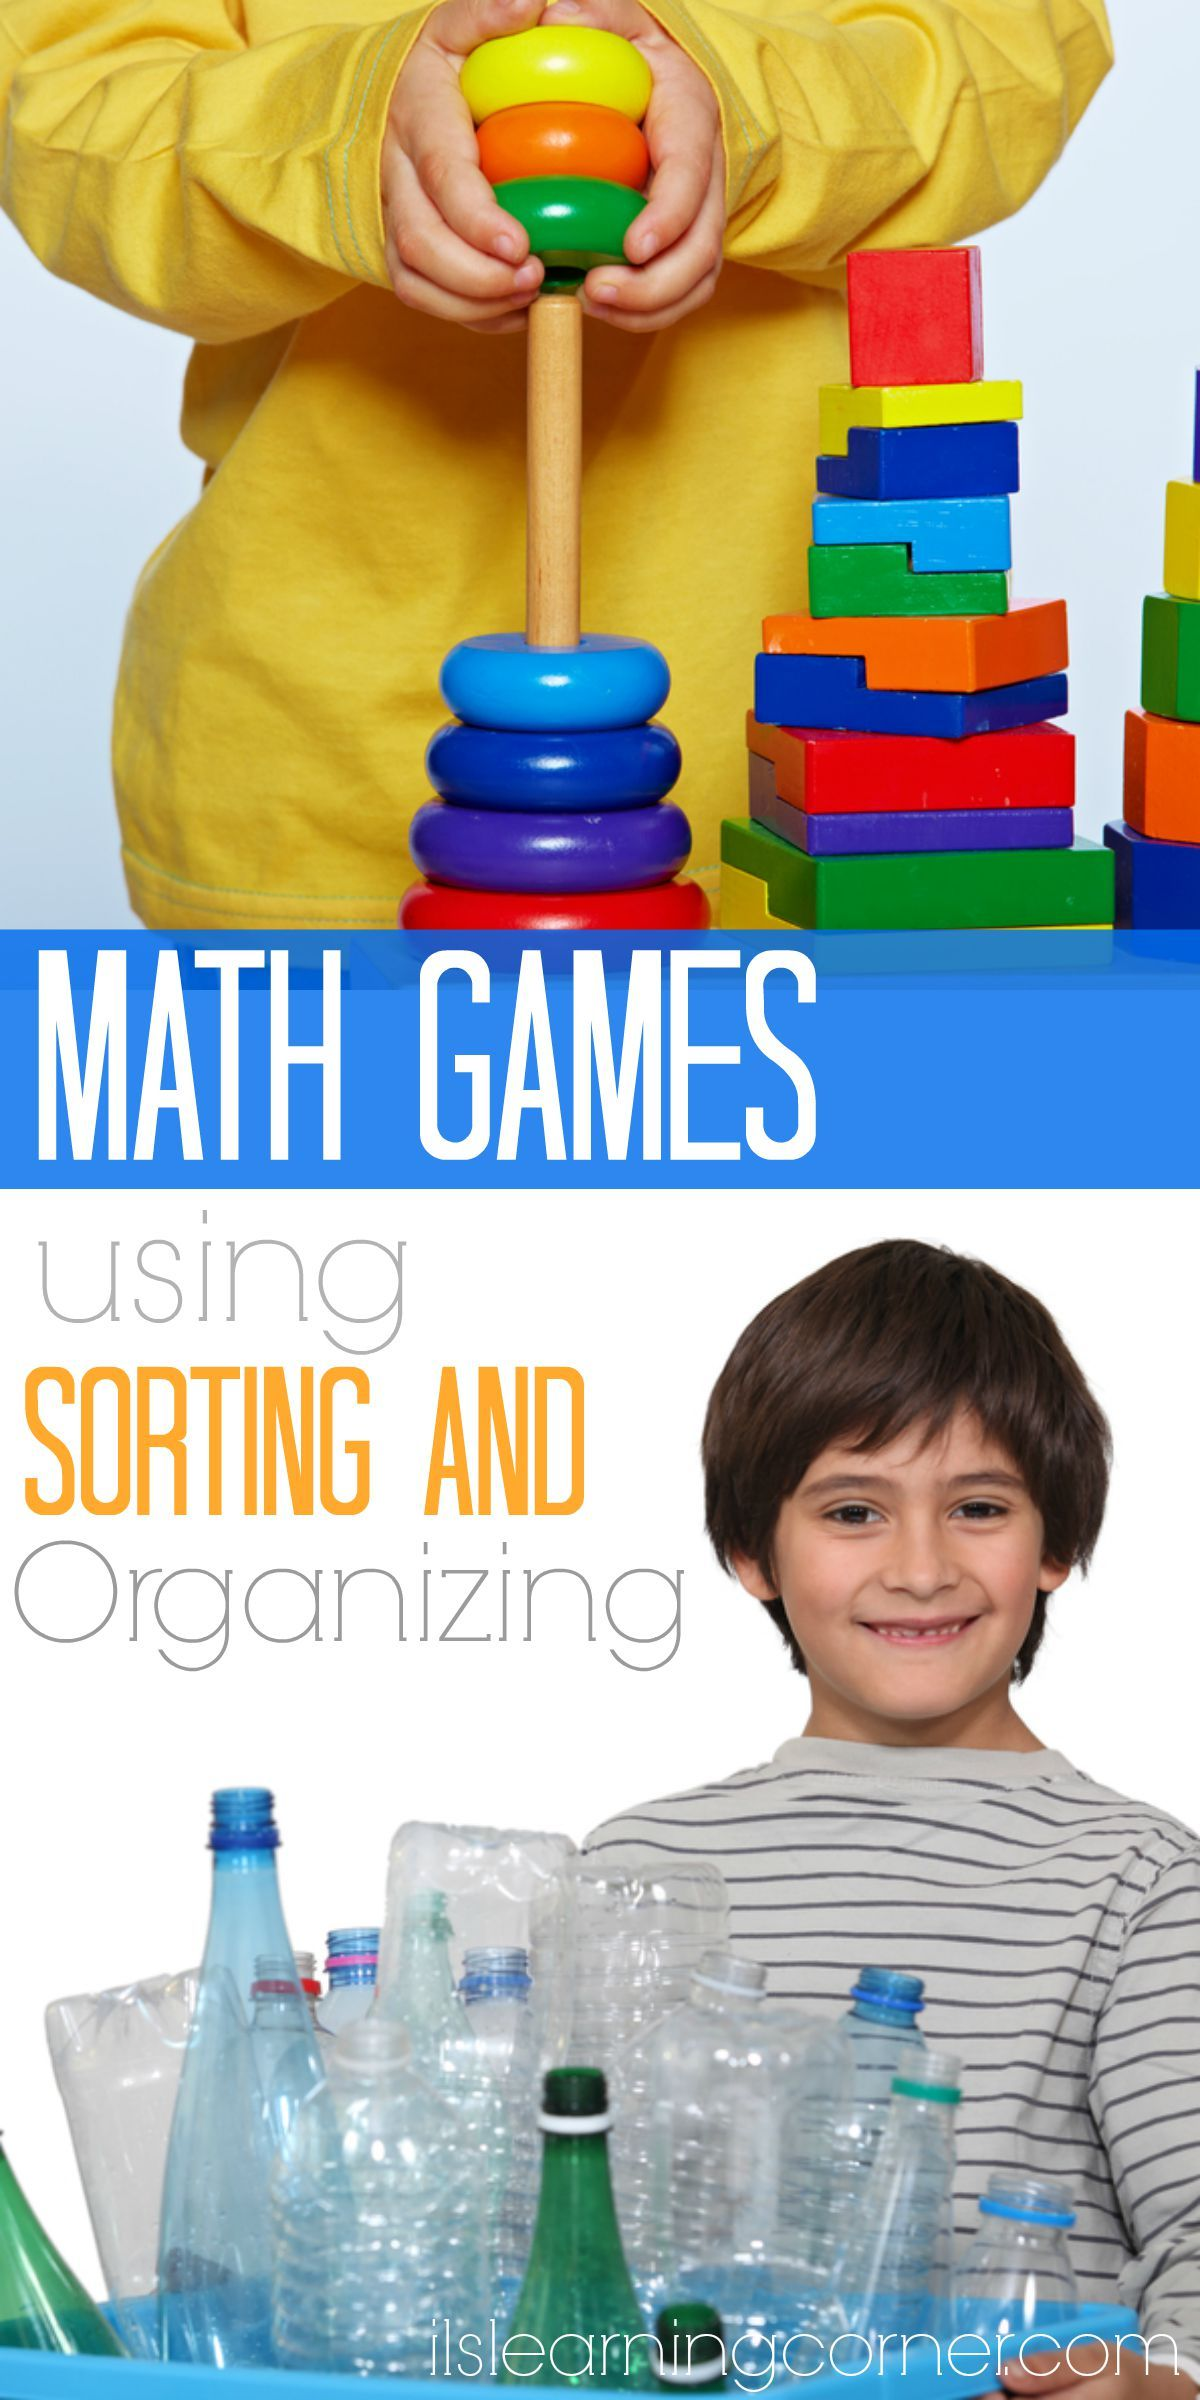 3 Cool Math Games Using Sorting and Organizing Activities